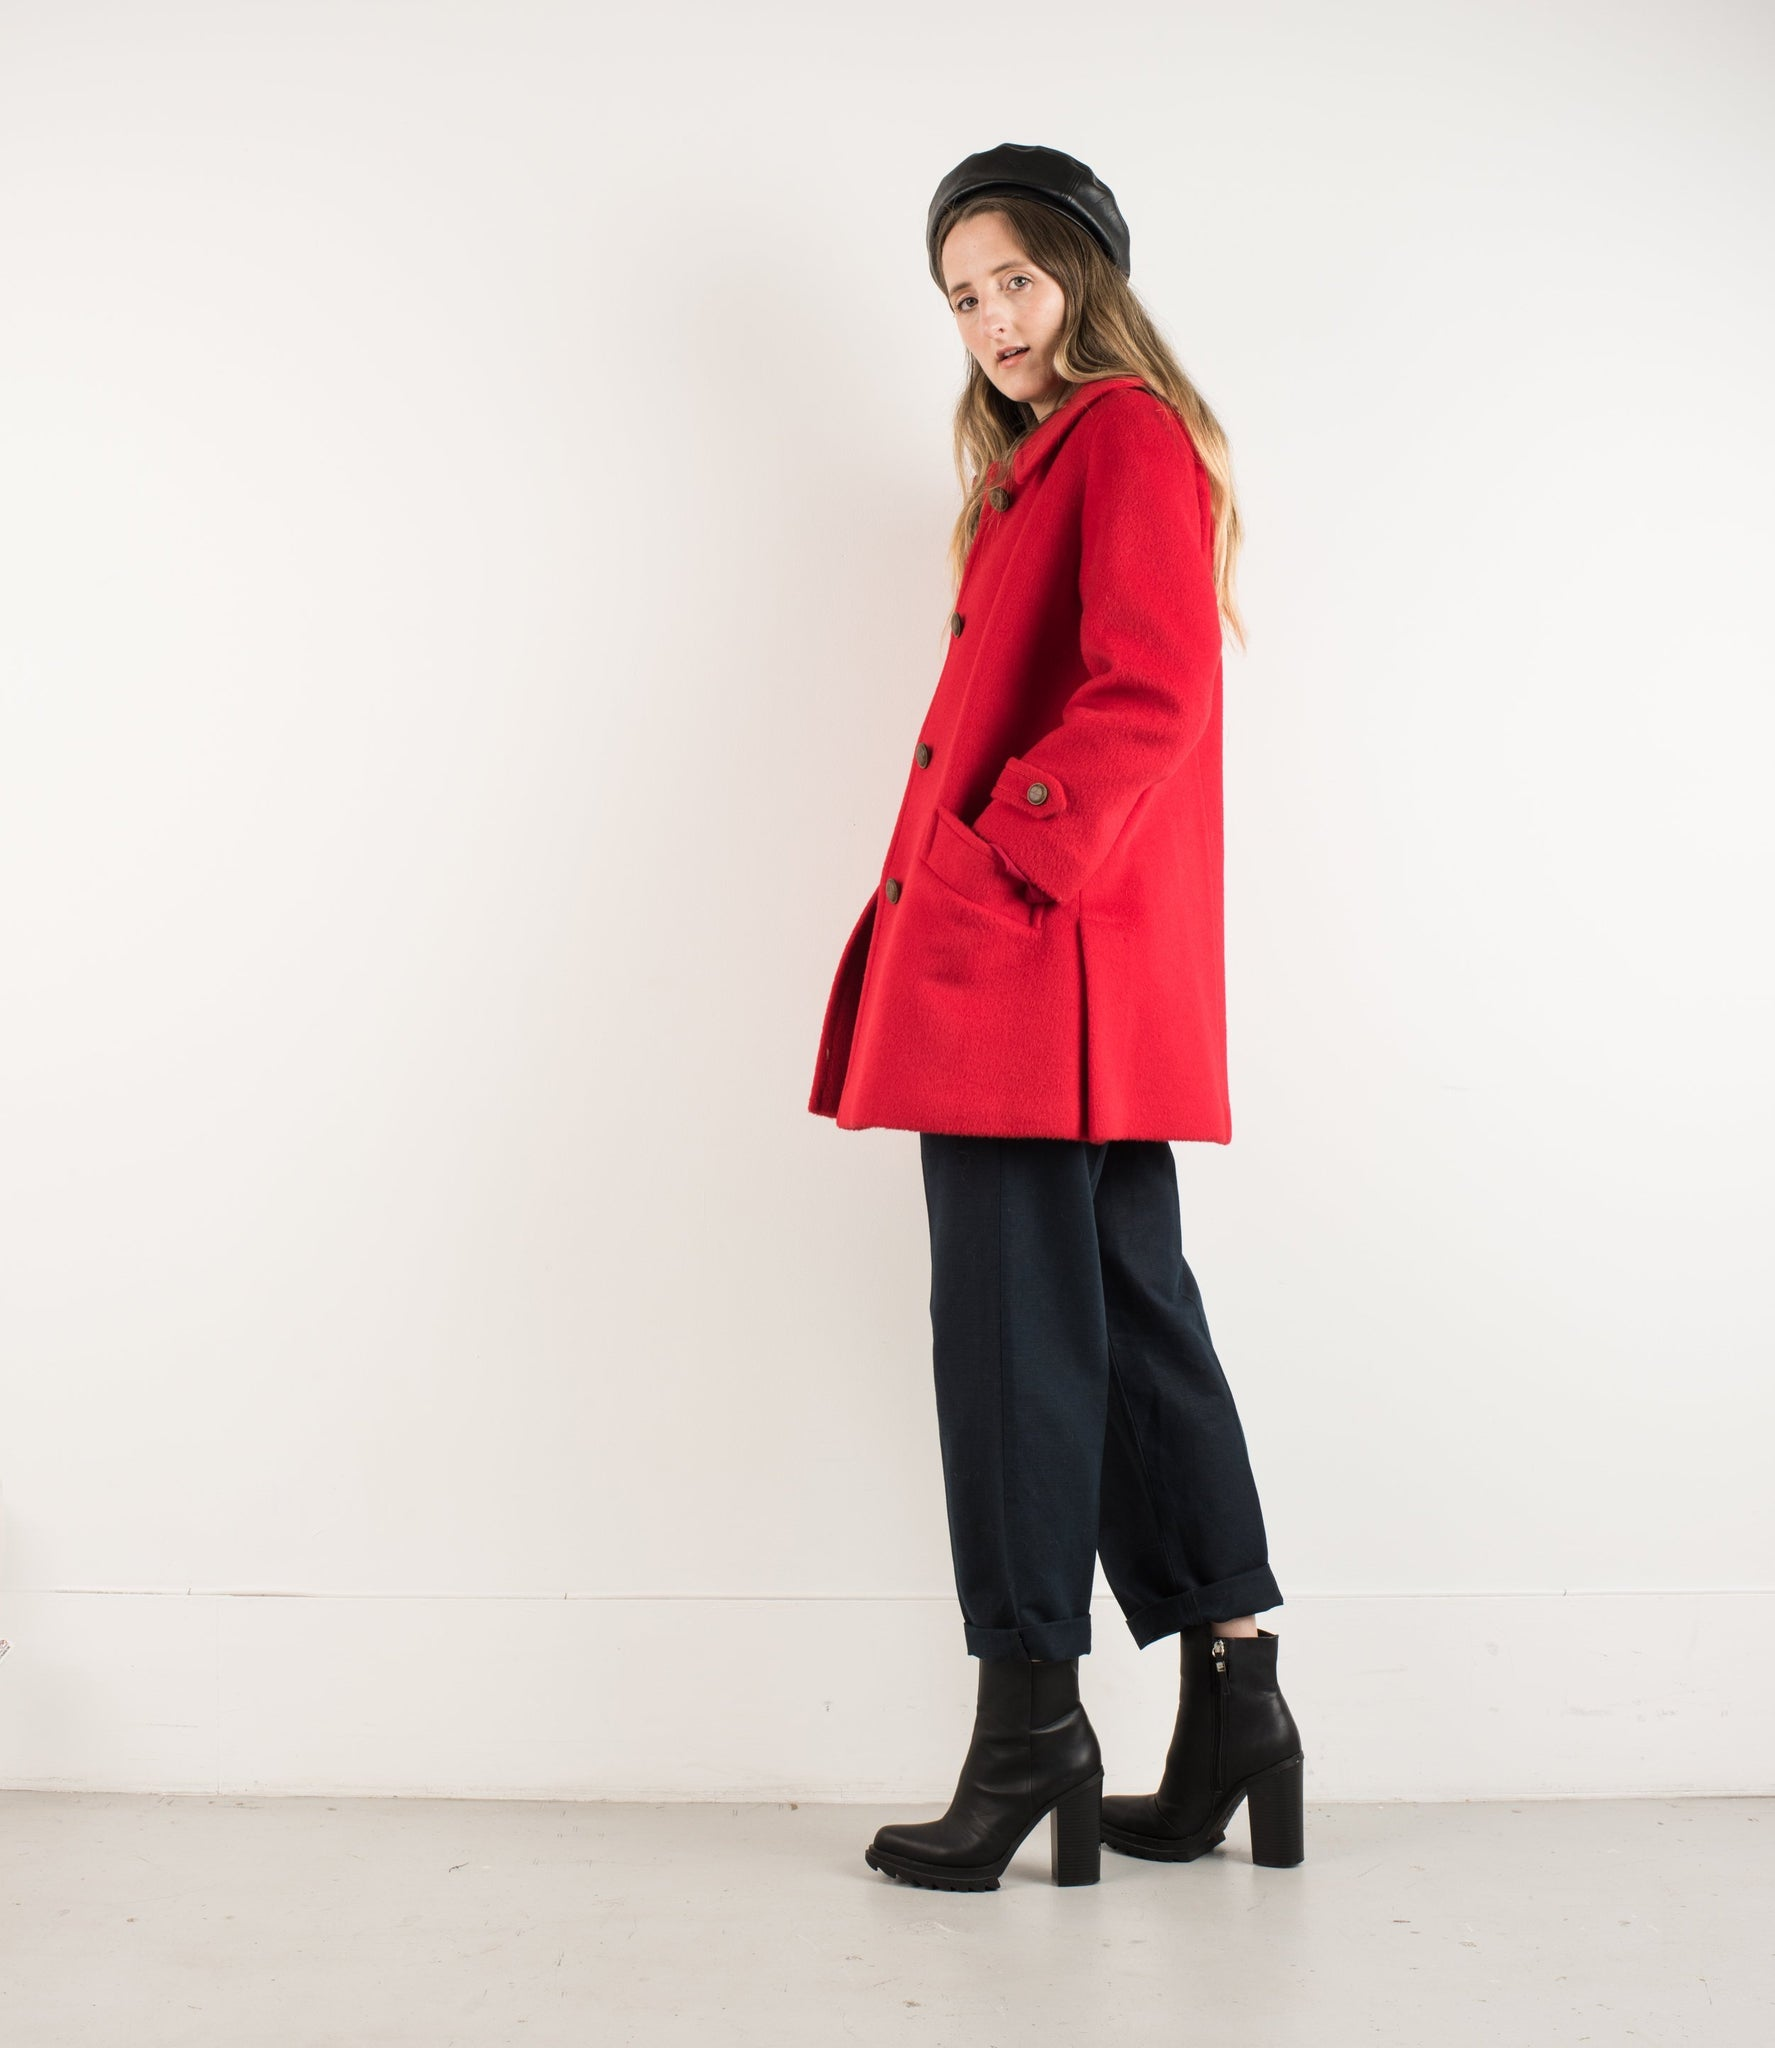 Vintage Red Wool Jacket / S - Closed Caption